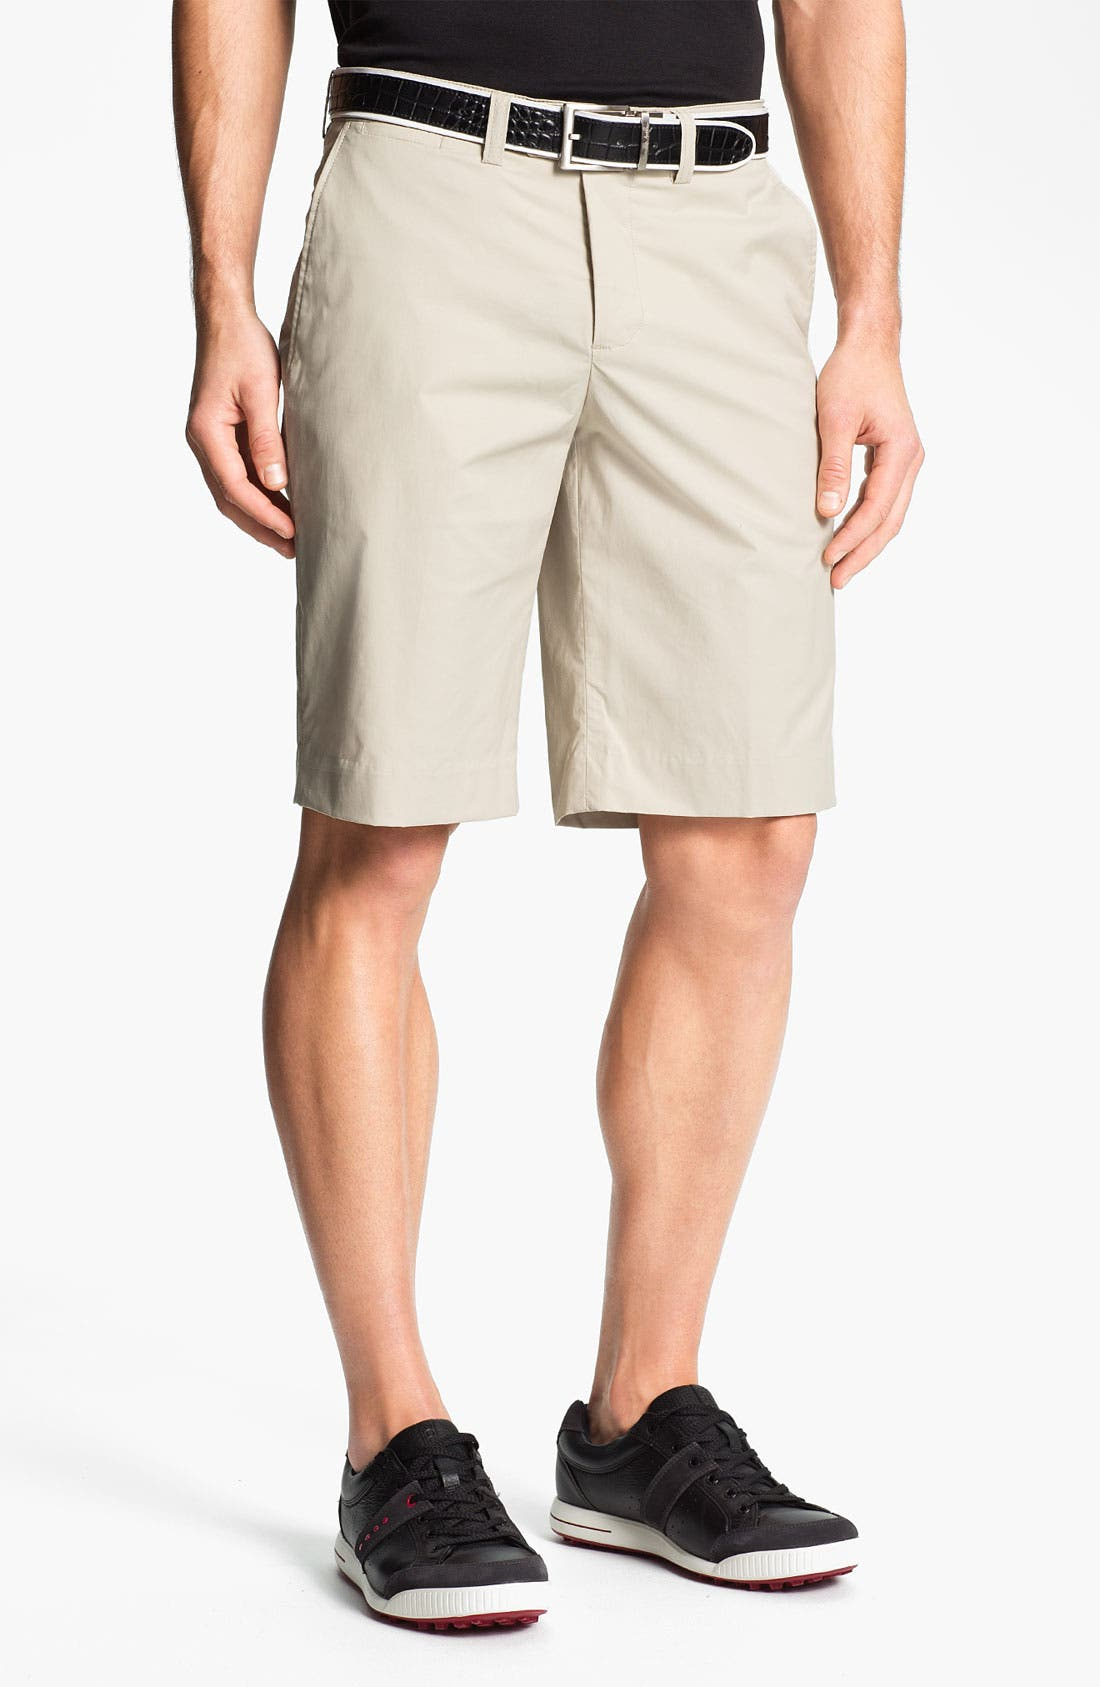 Main Image - Aquascutum Golf 'Mash' Golf Shorts (Online Only)